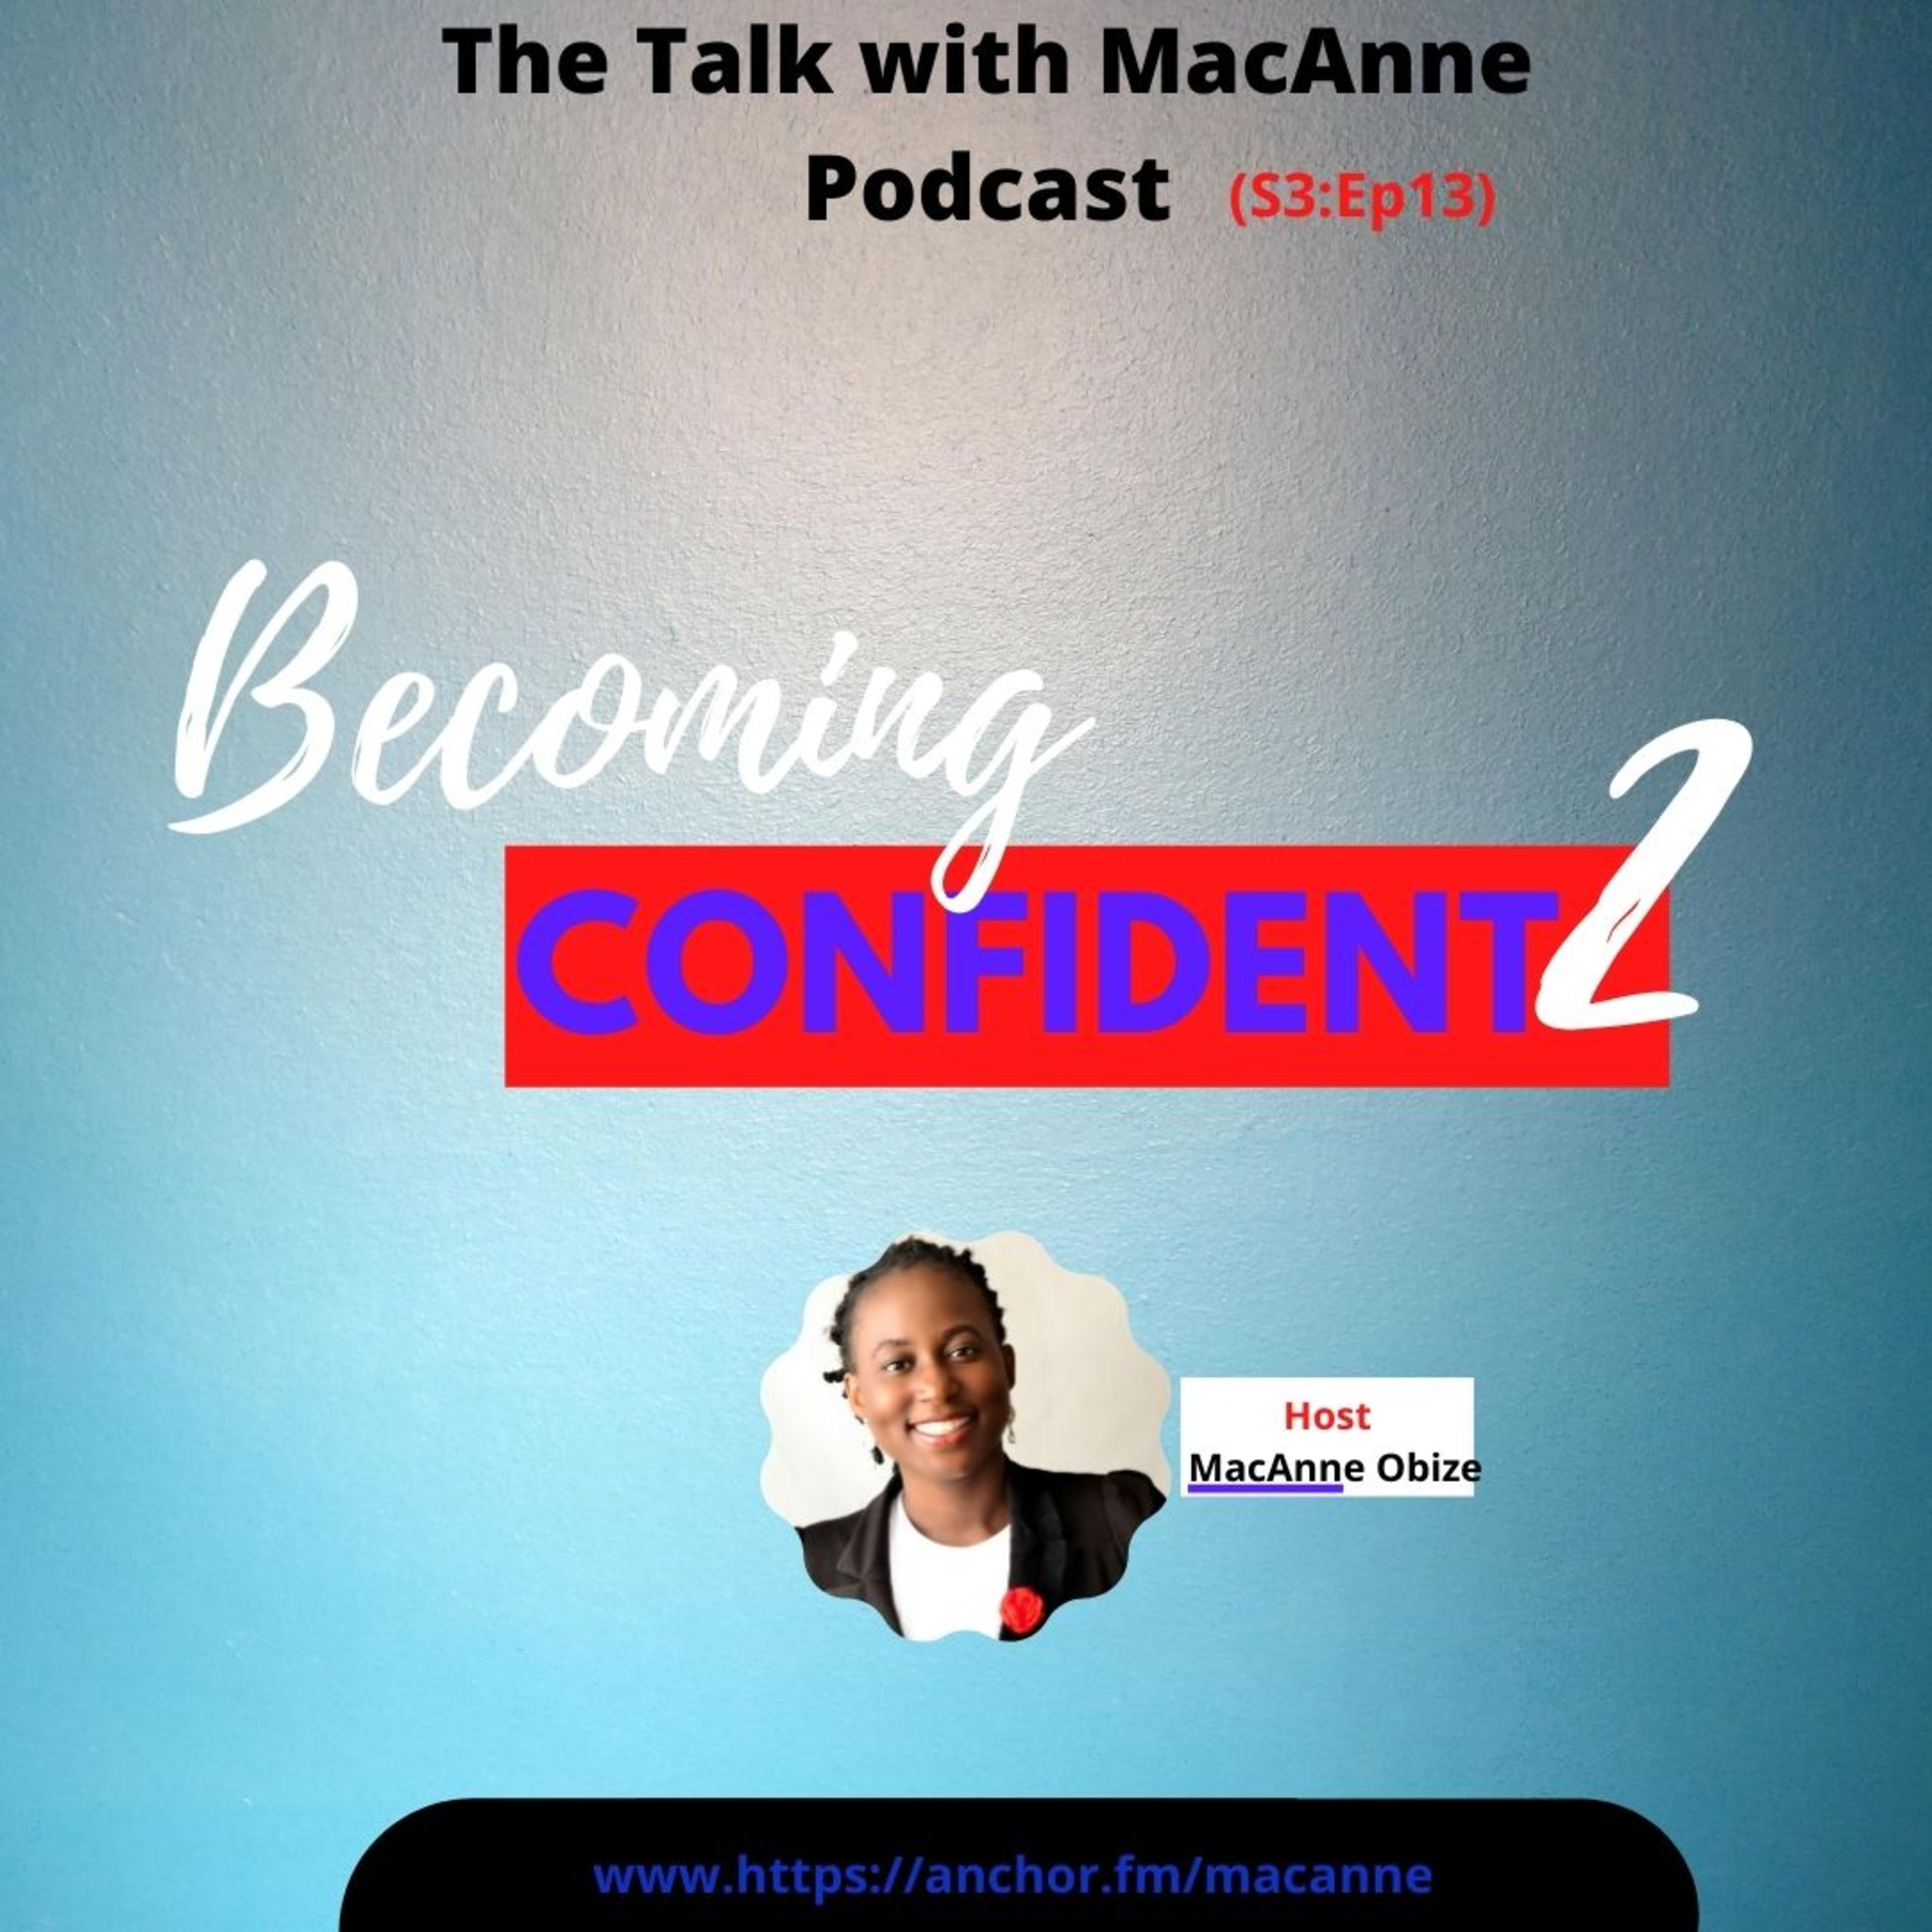 The Talk with MacAnne on Jamit